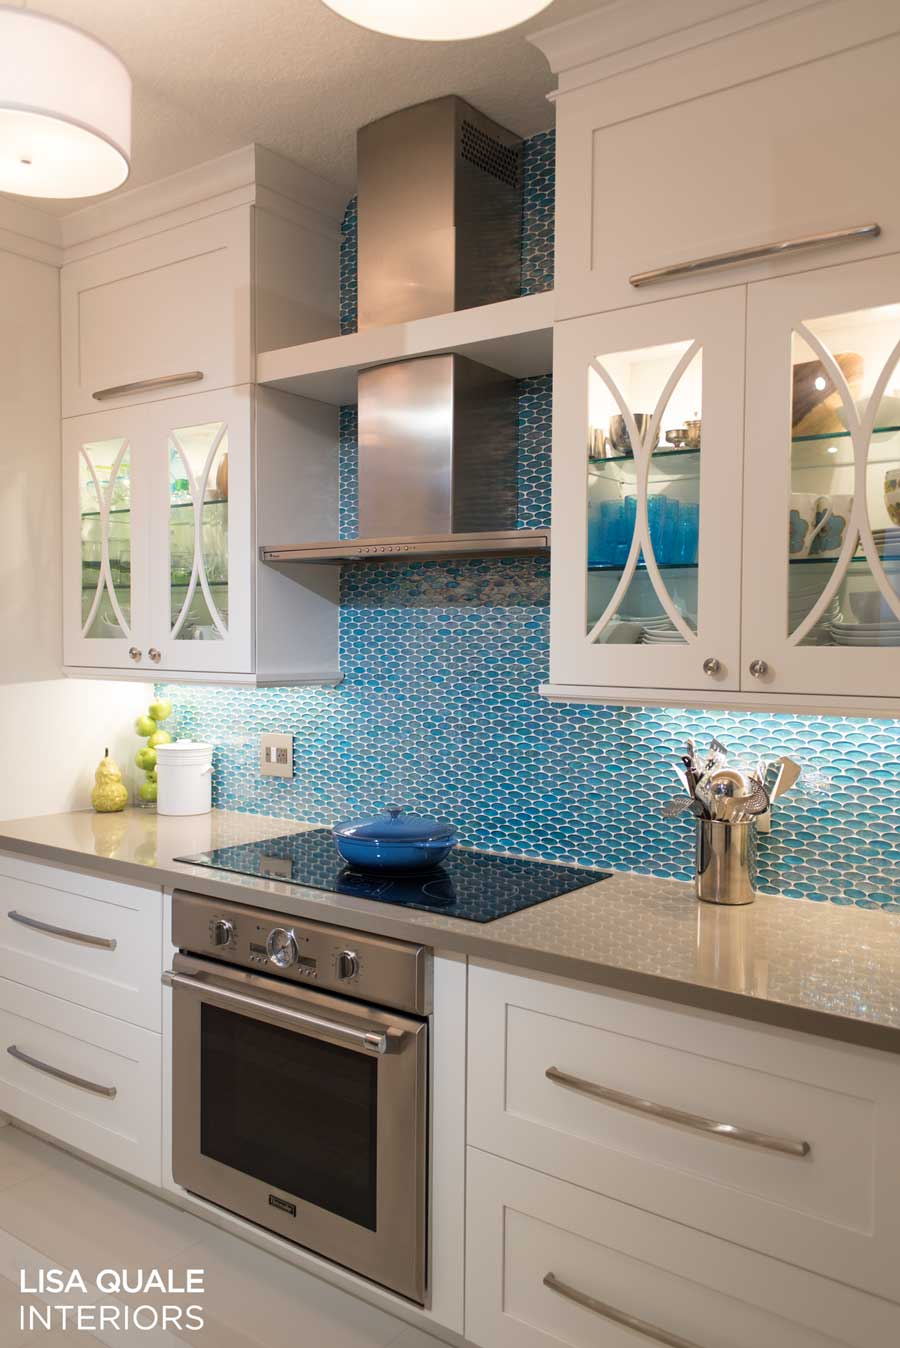 Kitchen Remodeling Interior Design west chester pa wilmington de wayne pa main line downingtown pa devon pa